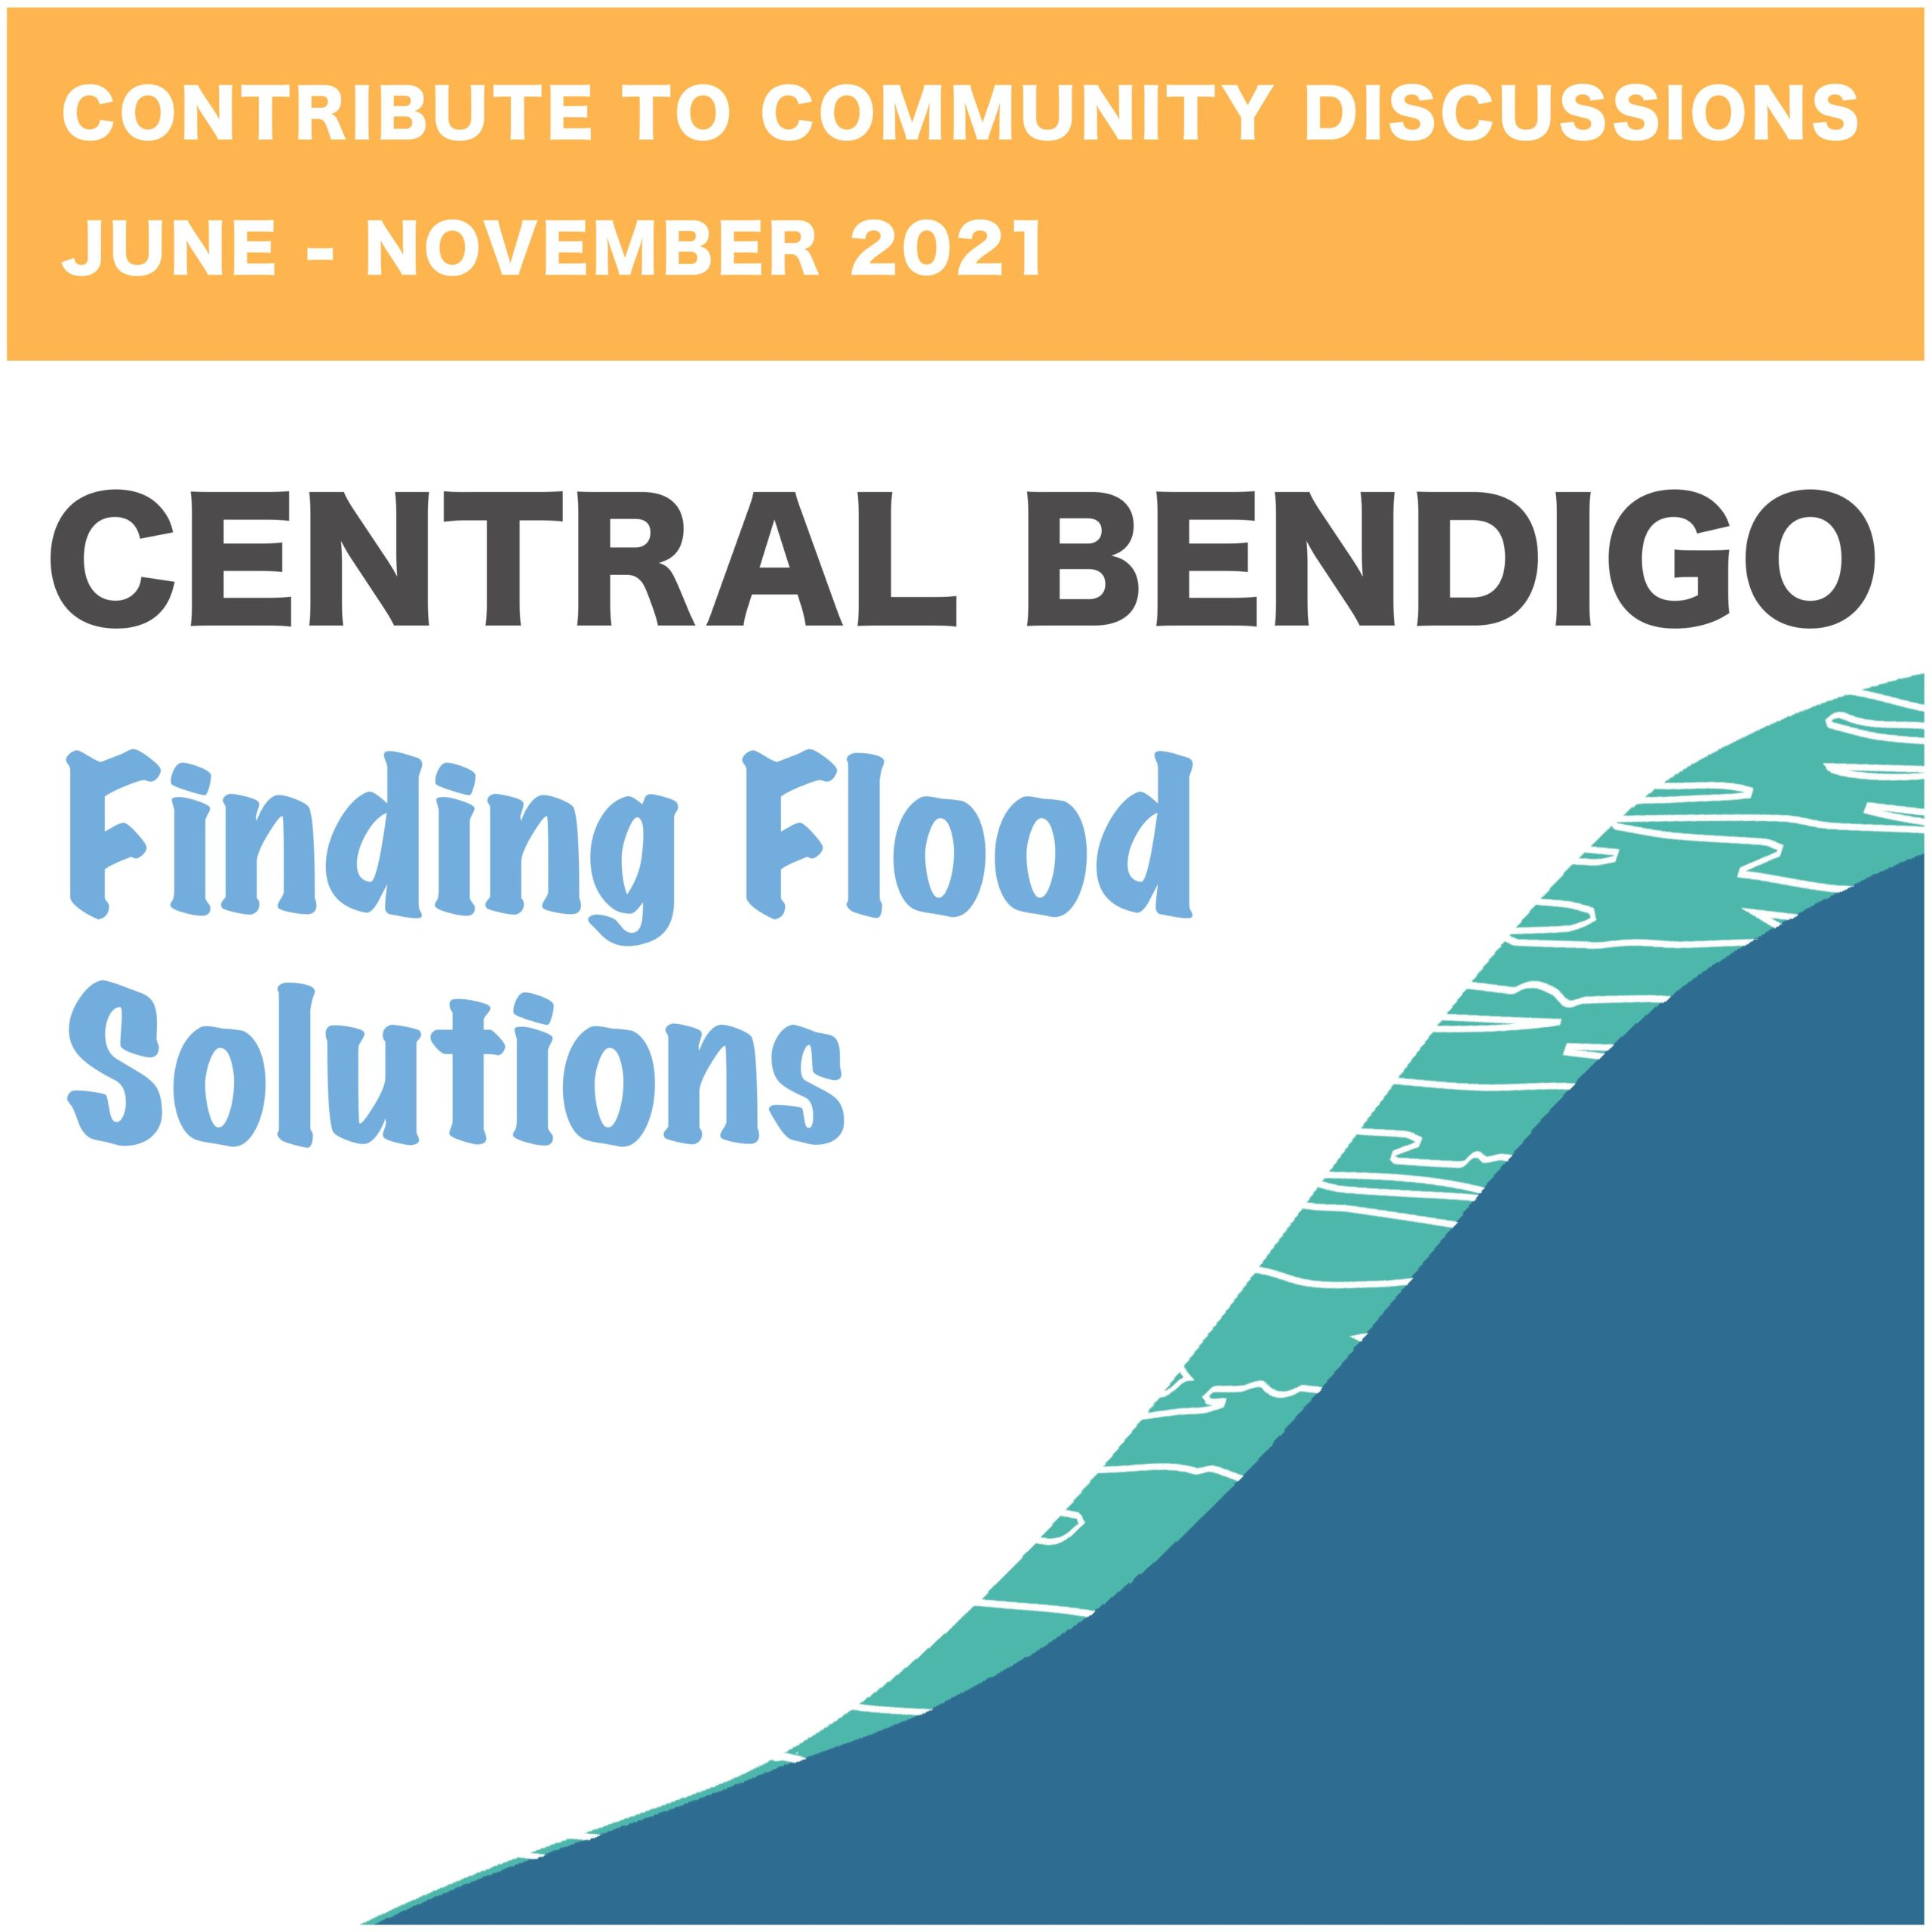 Have your say on Flood Solutions in Central Bendigo